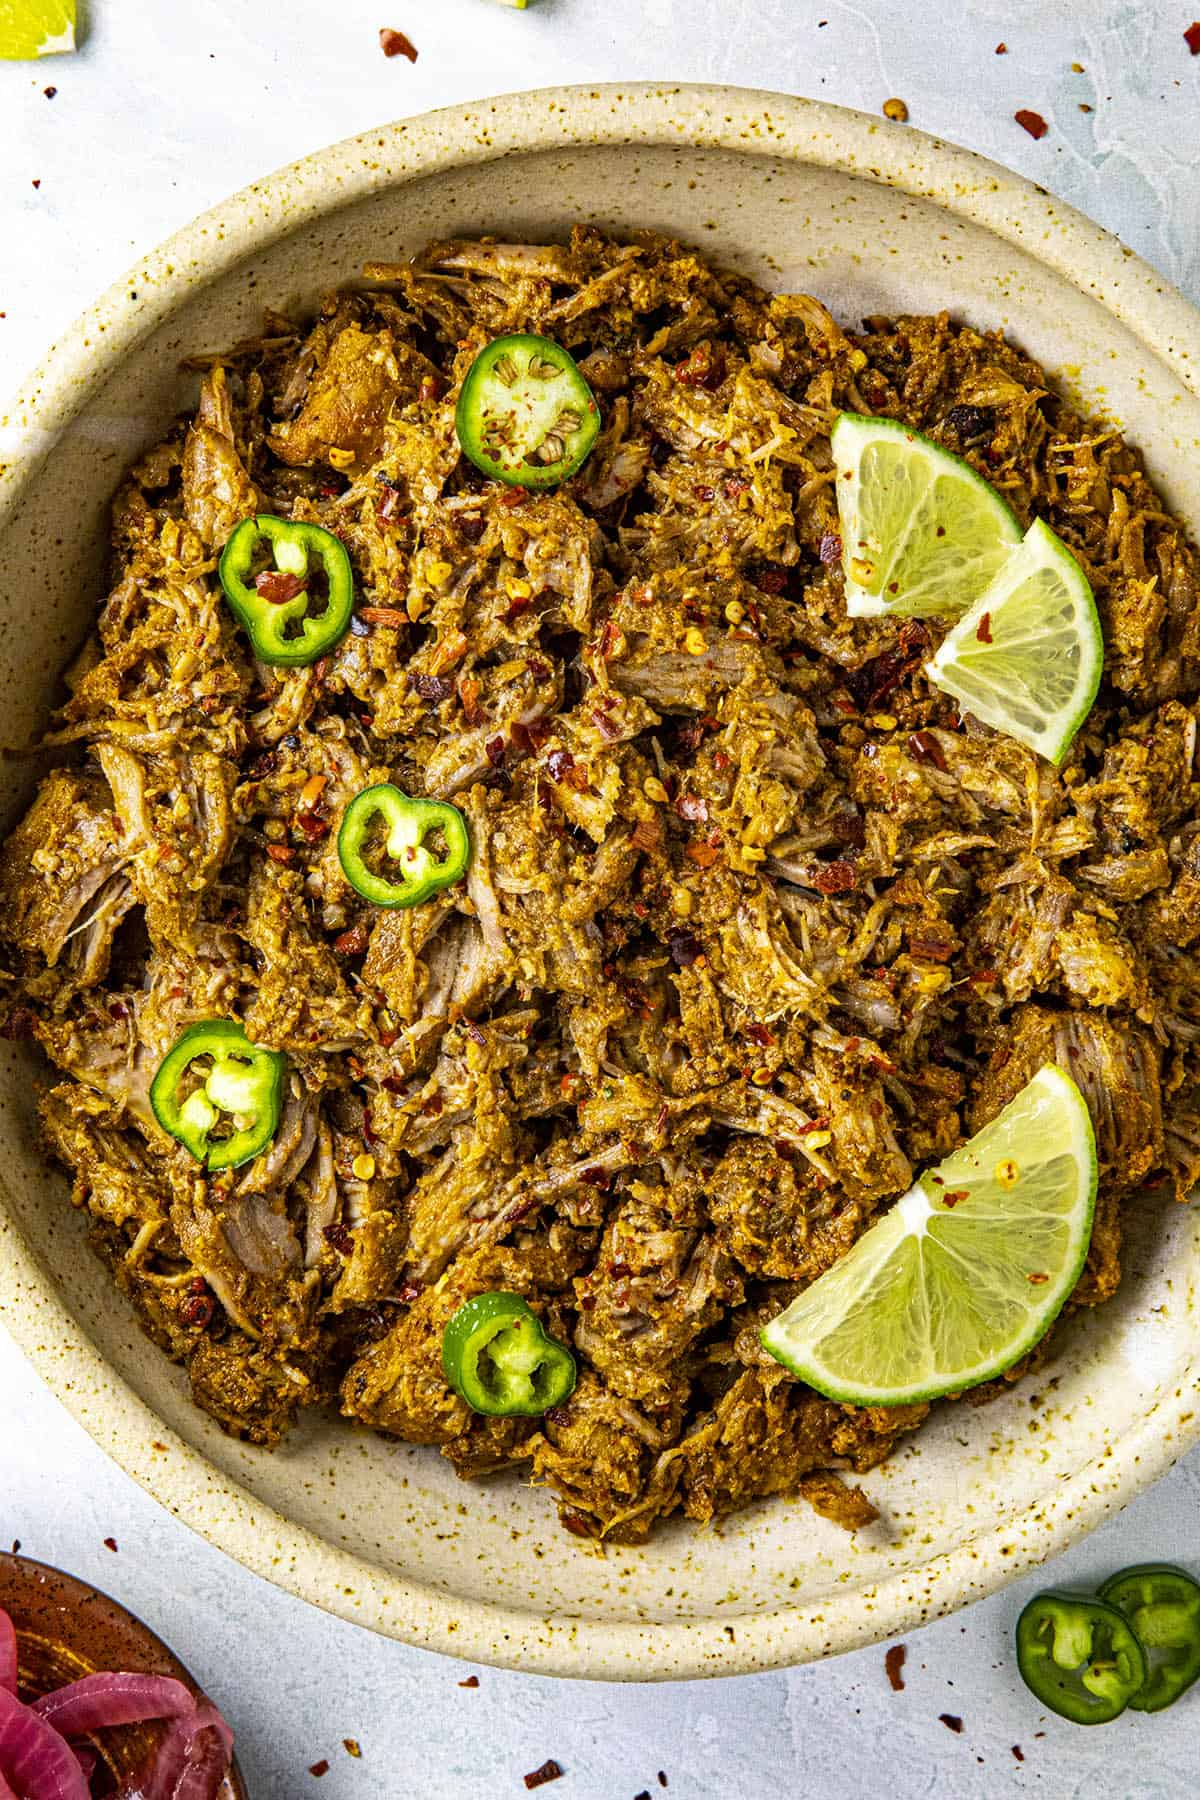 Shredded Cochinita Pibil in a bowl with lime wedges and sliced peppers